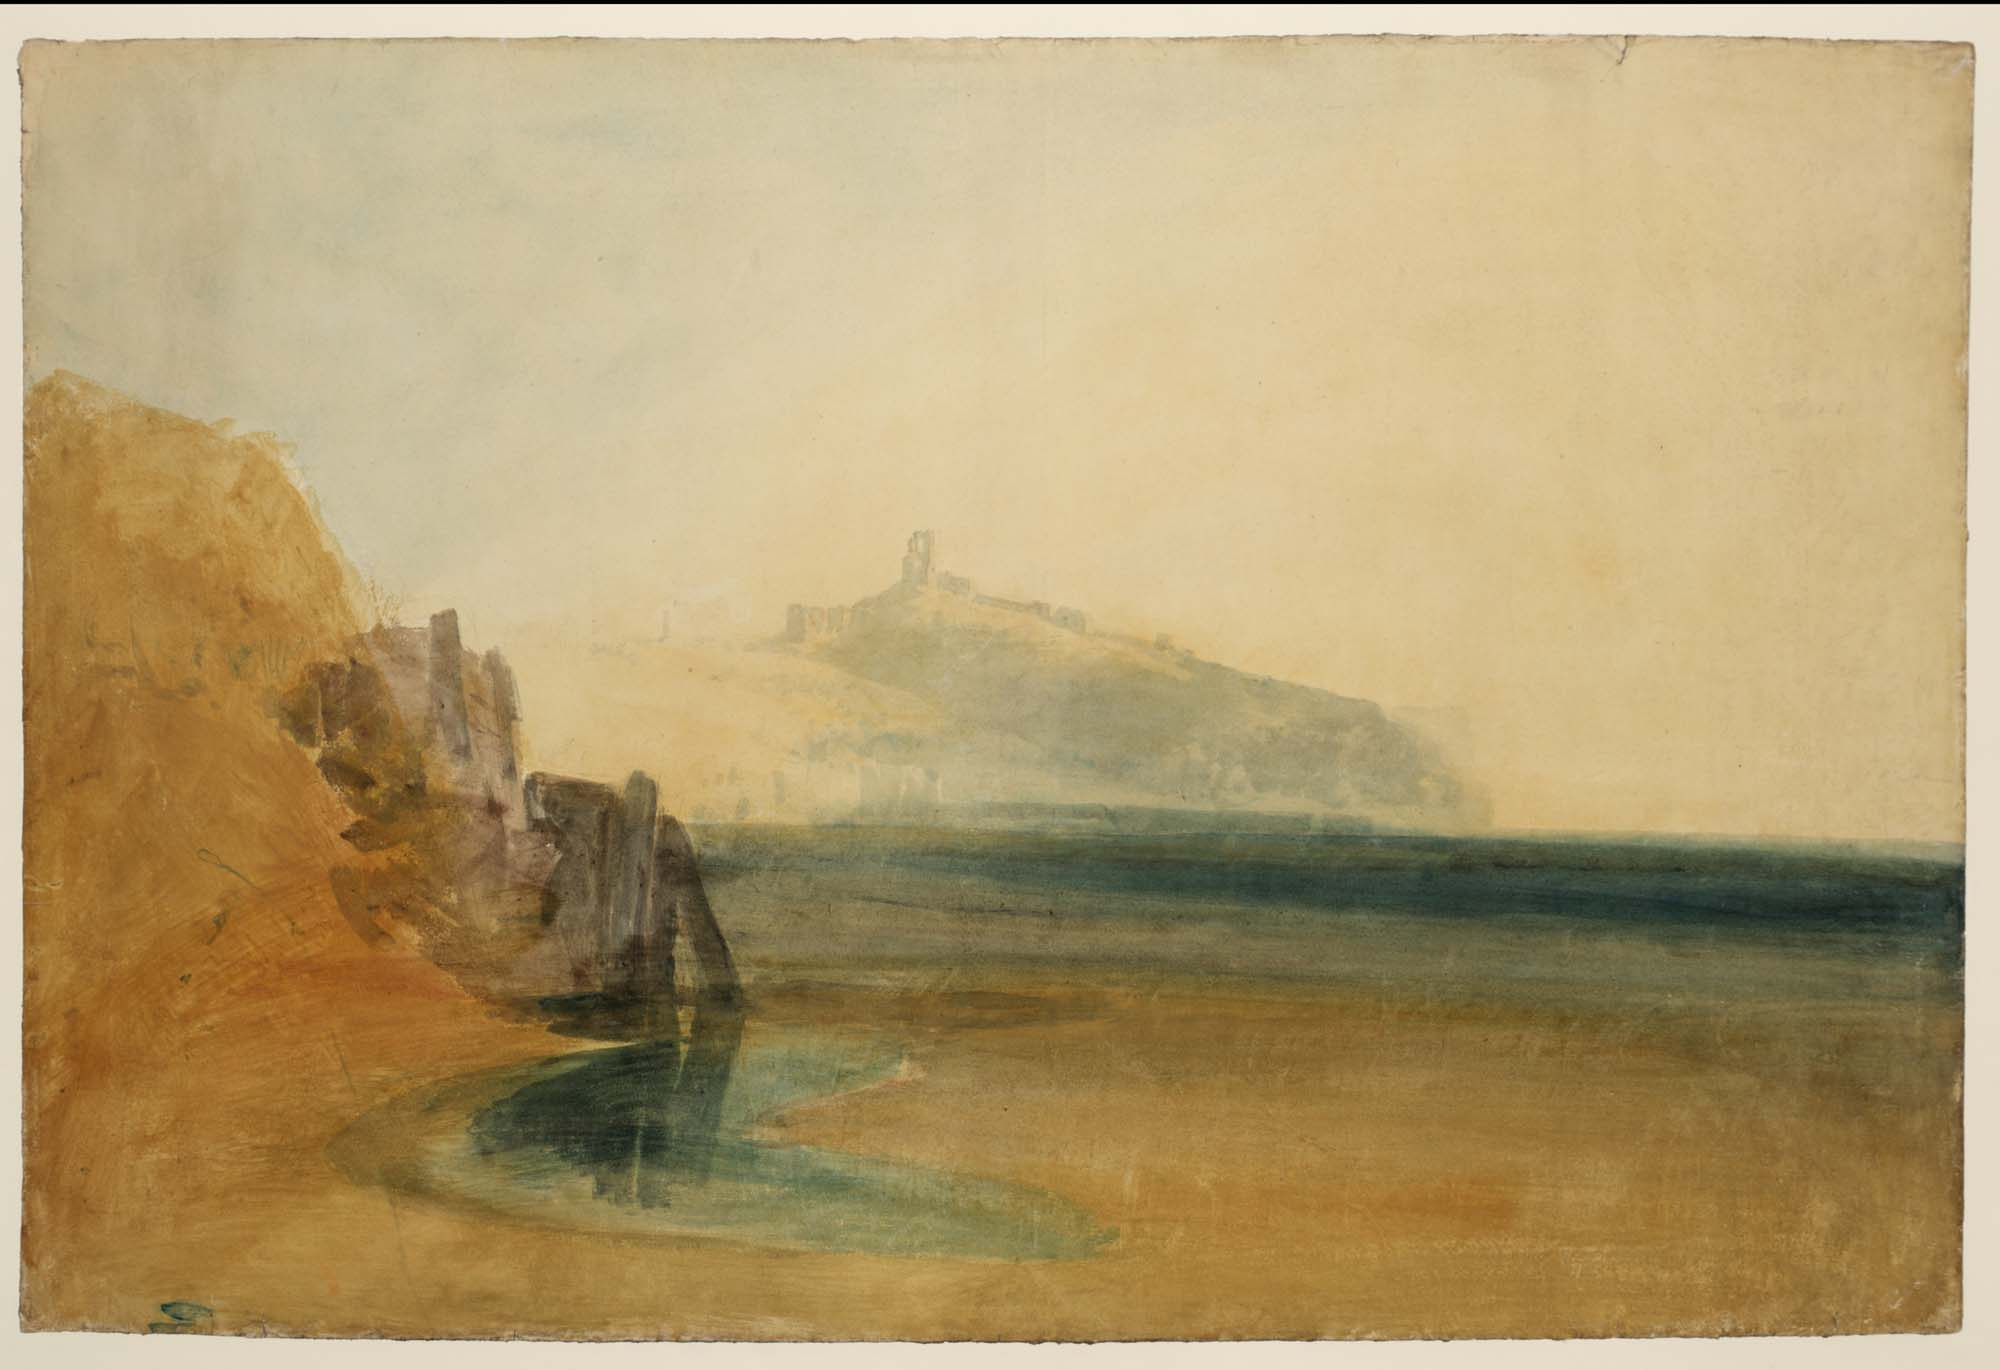 a watercolour across a beach coastline looking out to sea